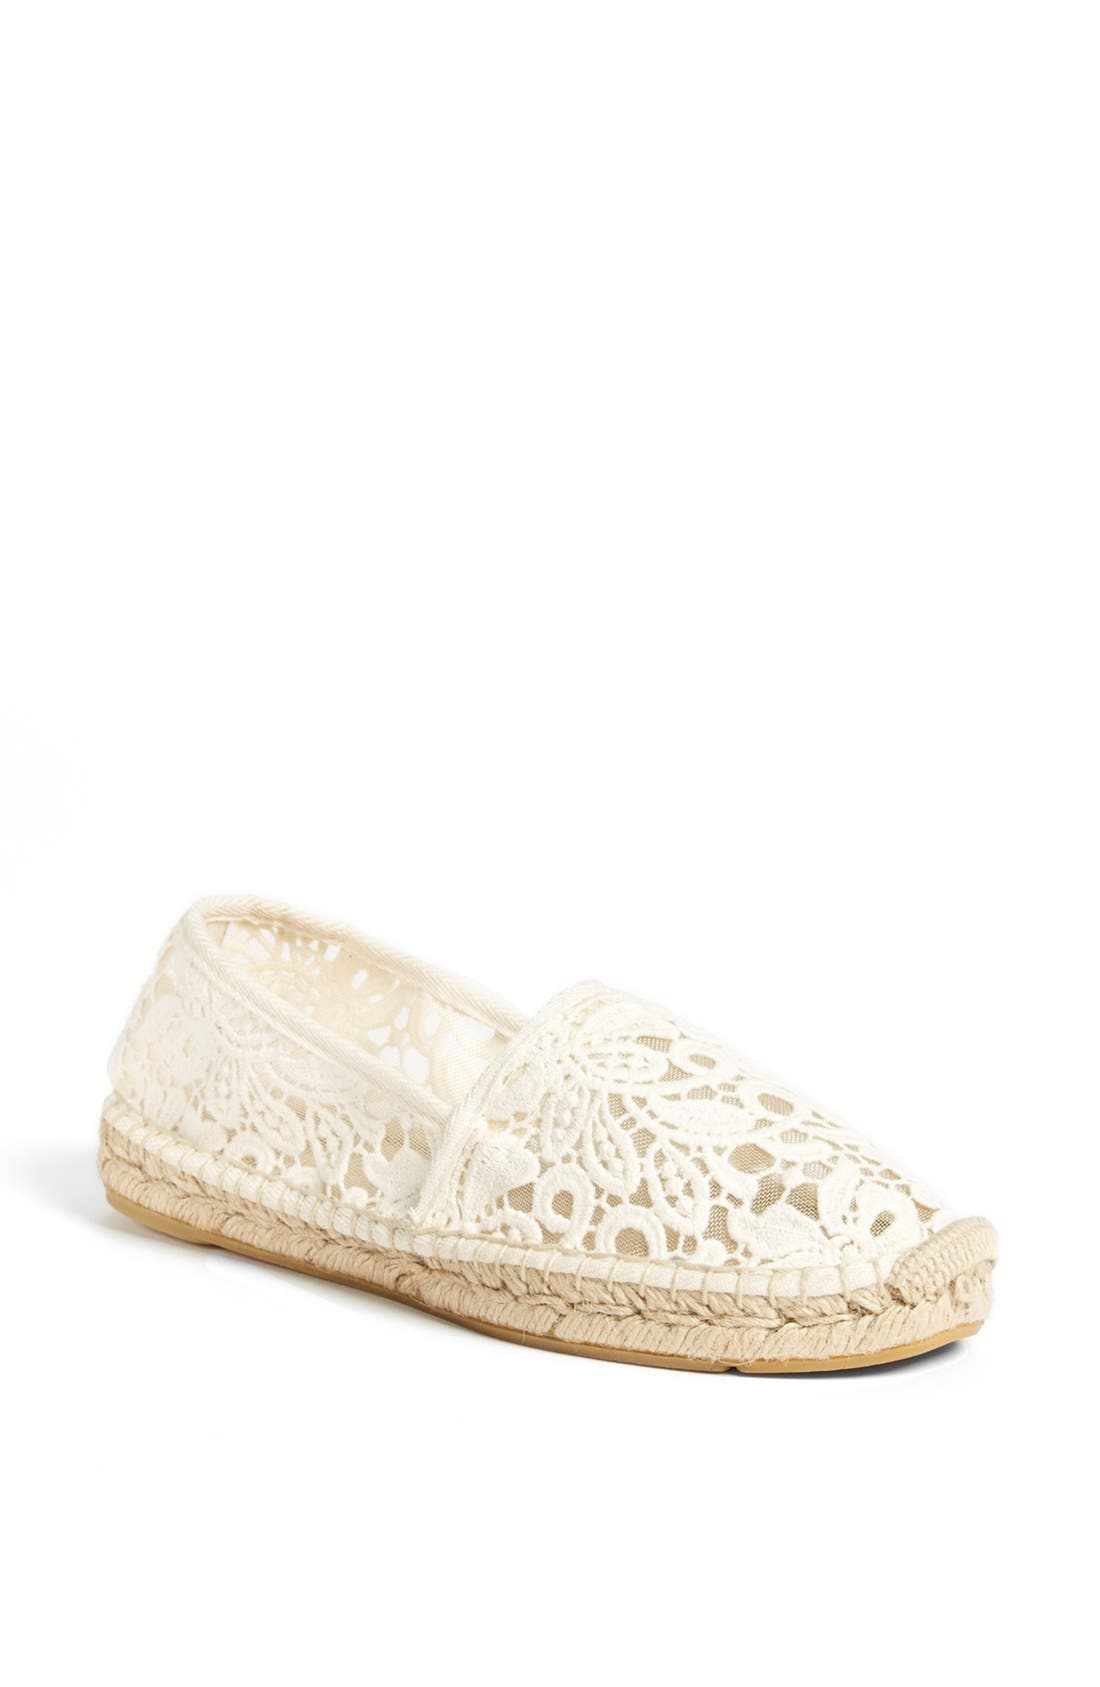 Main Image - Tory Burch 'Abbe' Espadrille